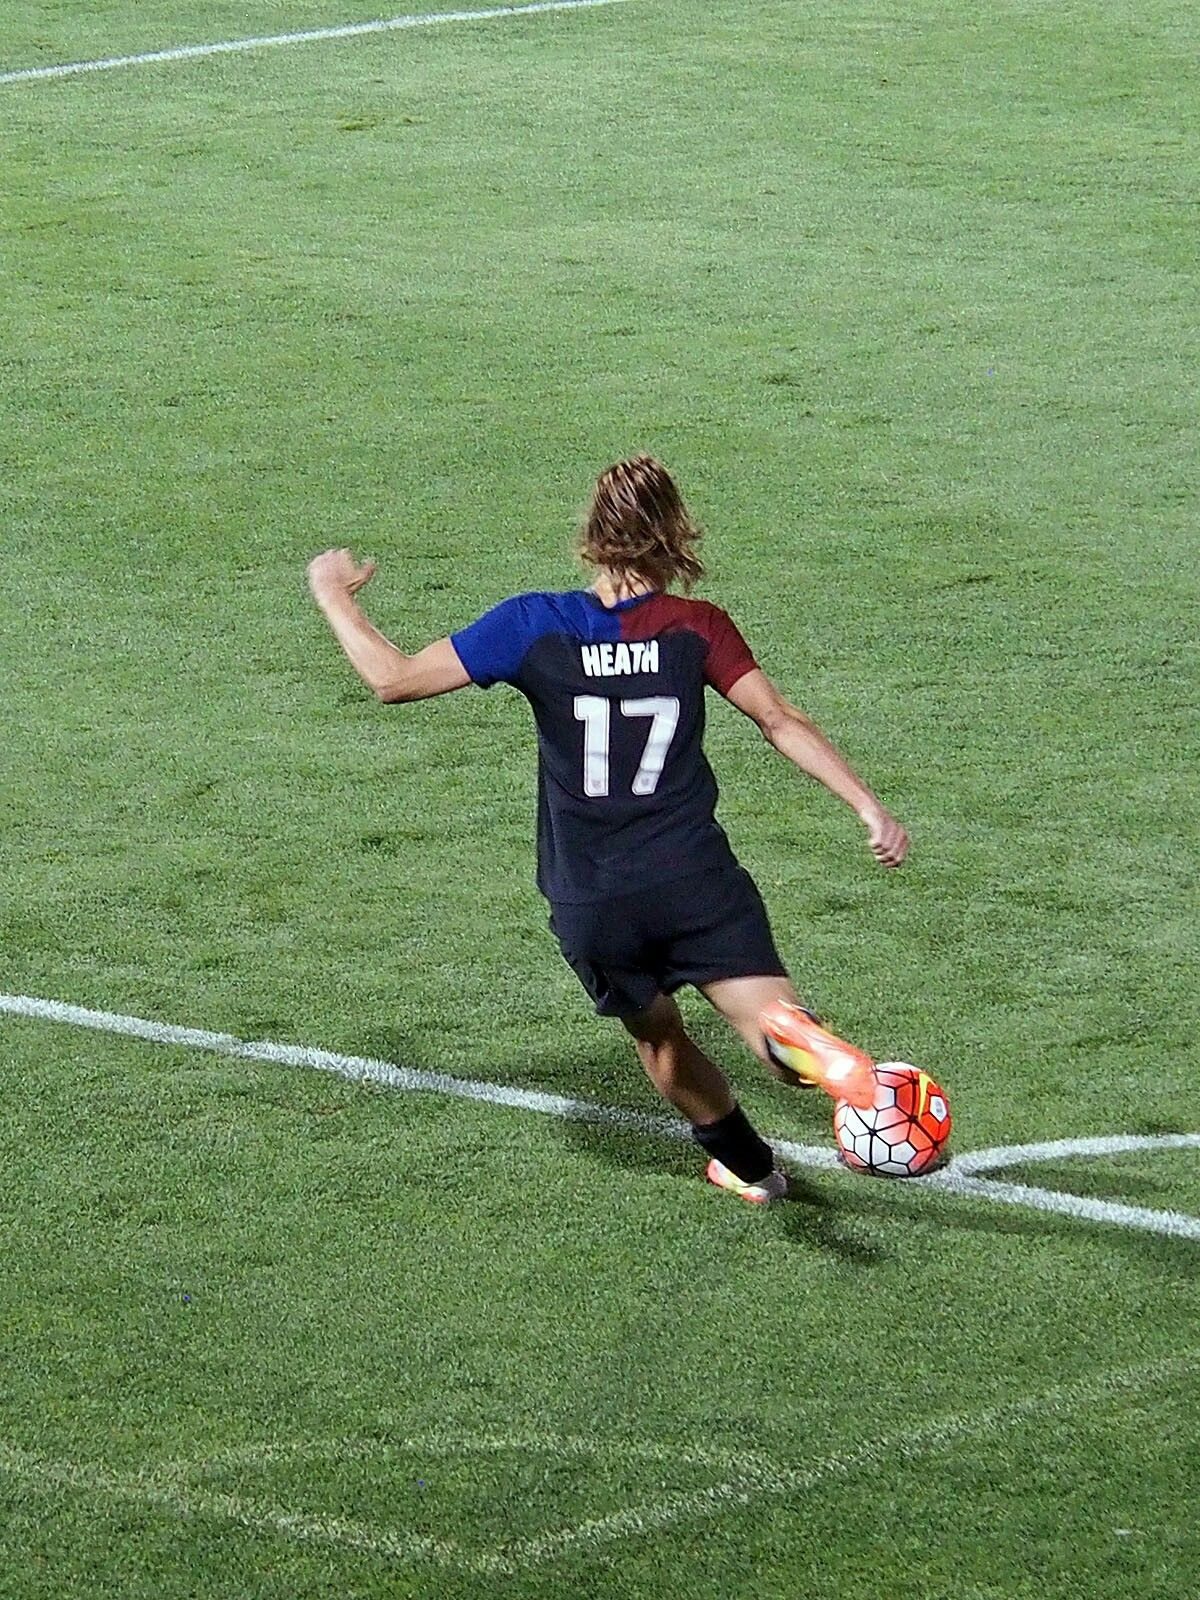 Tobin Heath 06 02 16 Usa Soccer Women Tobin Heath Uswnt